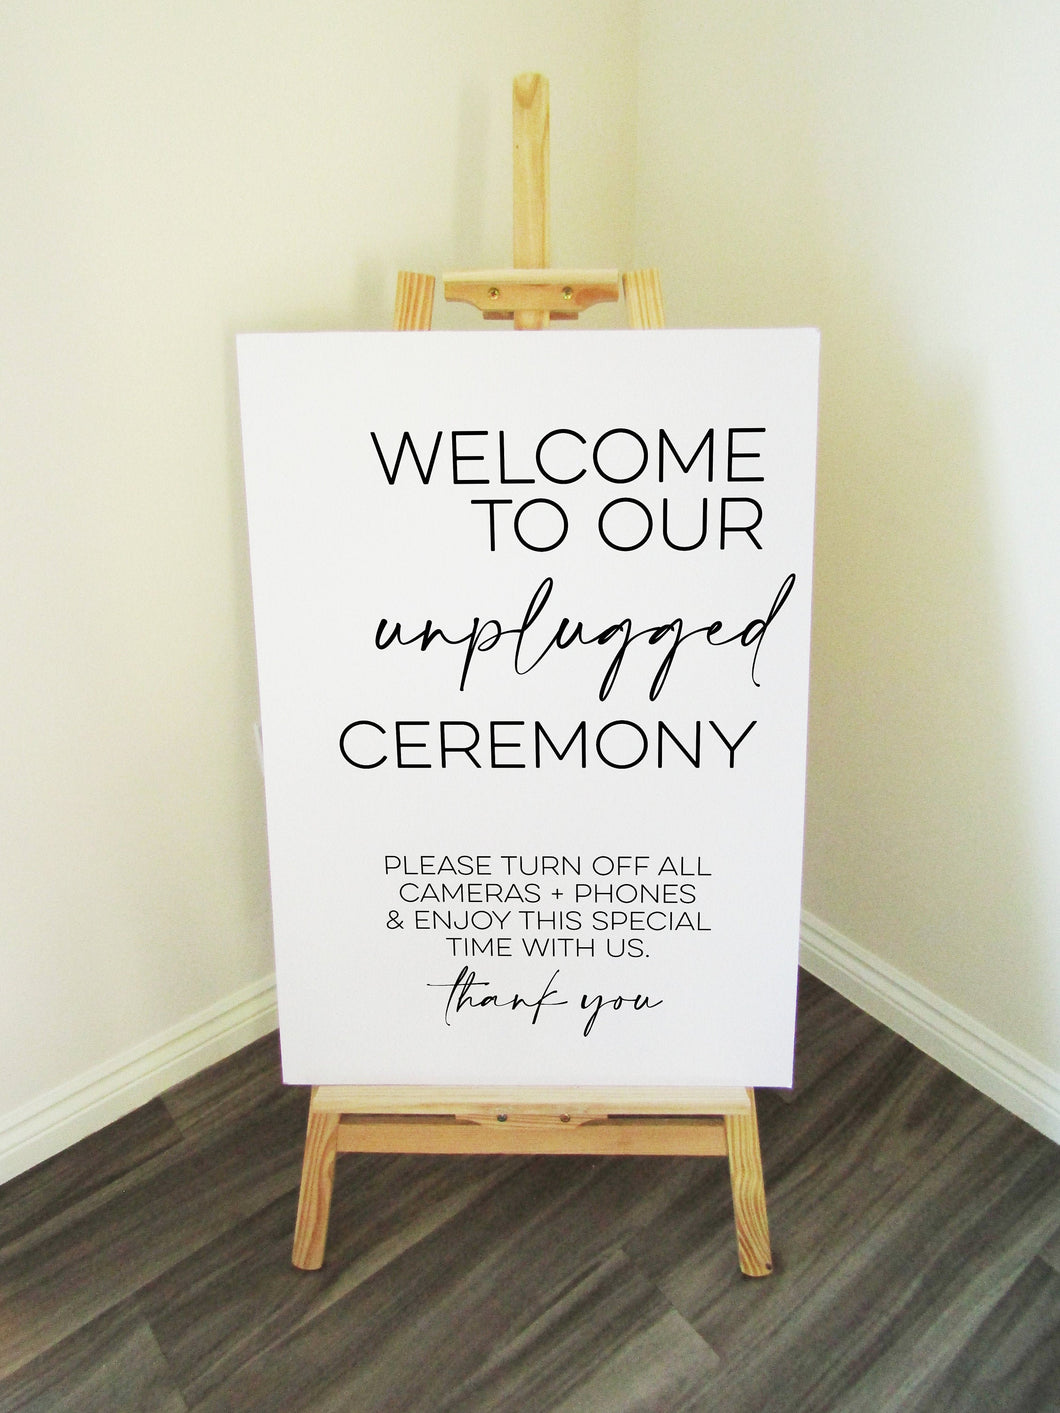 Vinyl Decal Unplugged Ceremony Minimal Wedding Welcome Sign // A3/A2 // DIY Ceremony Signage